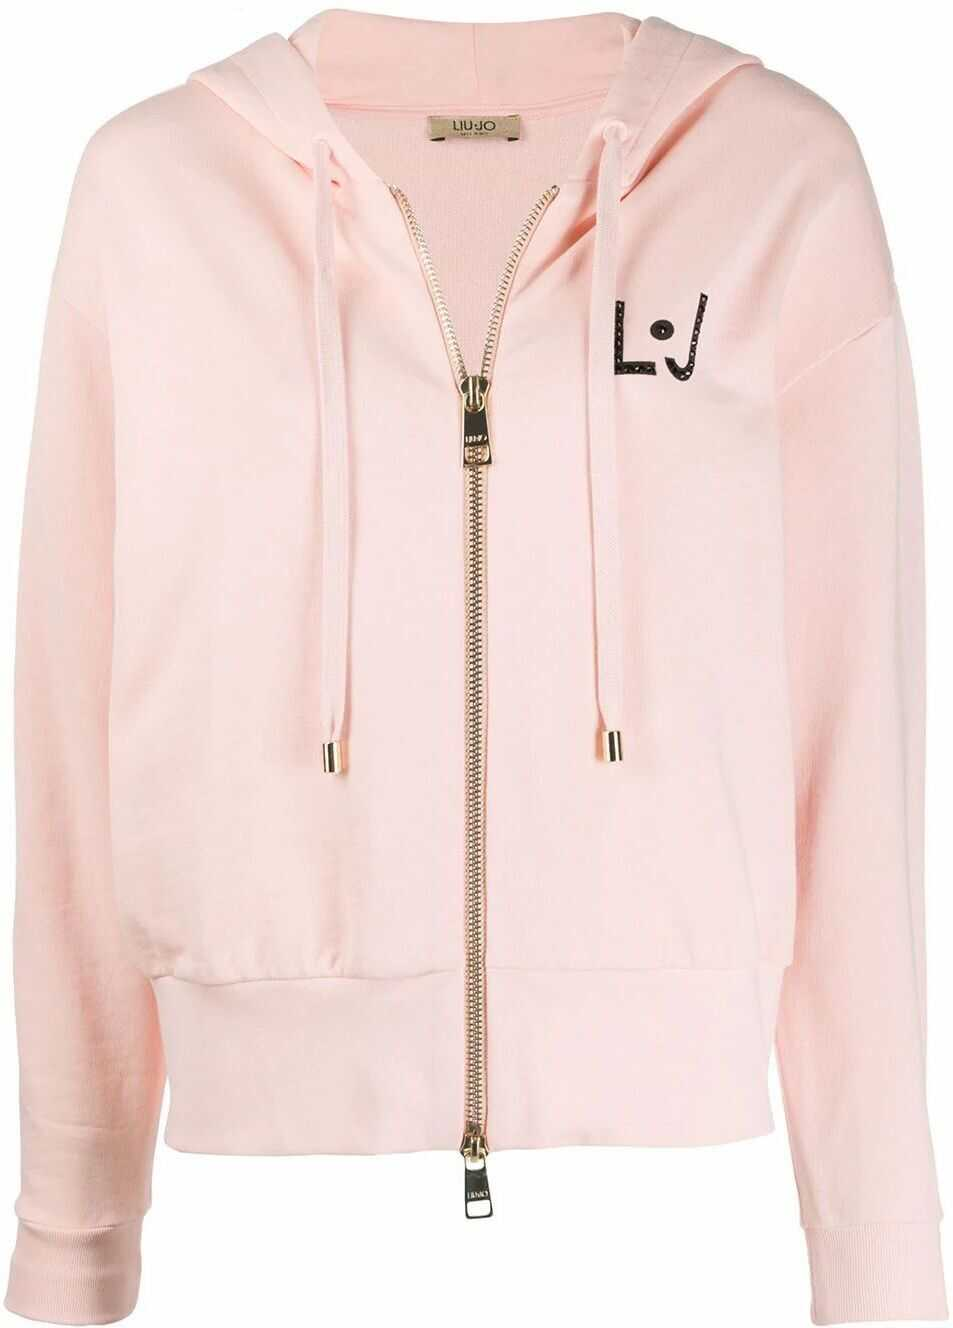 Liu Jo Cotton Sweatshirt PINK